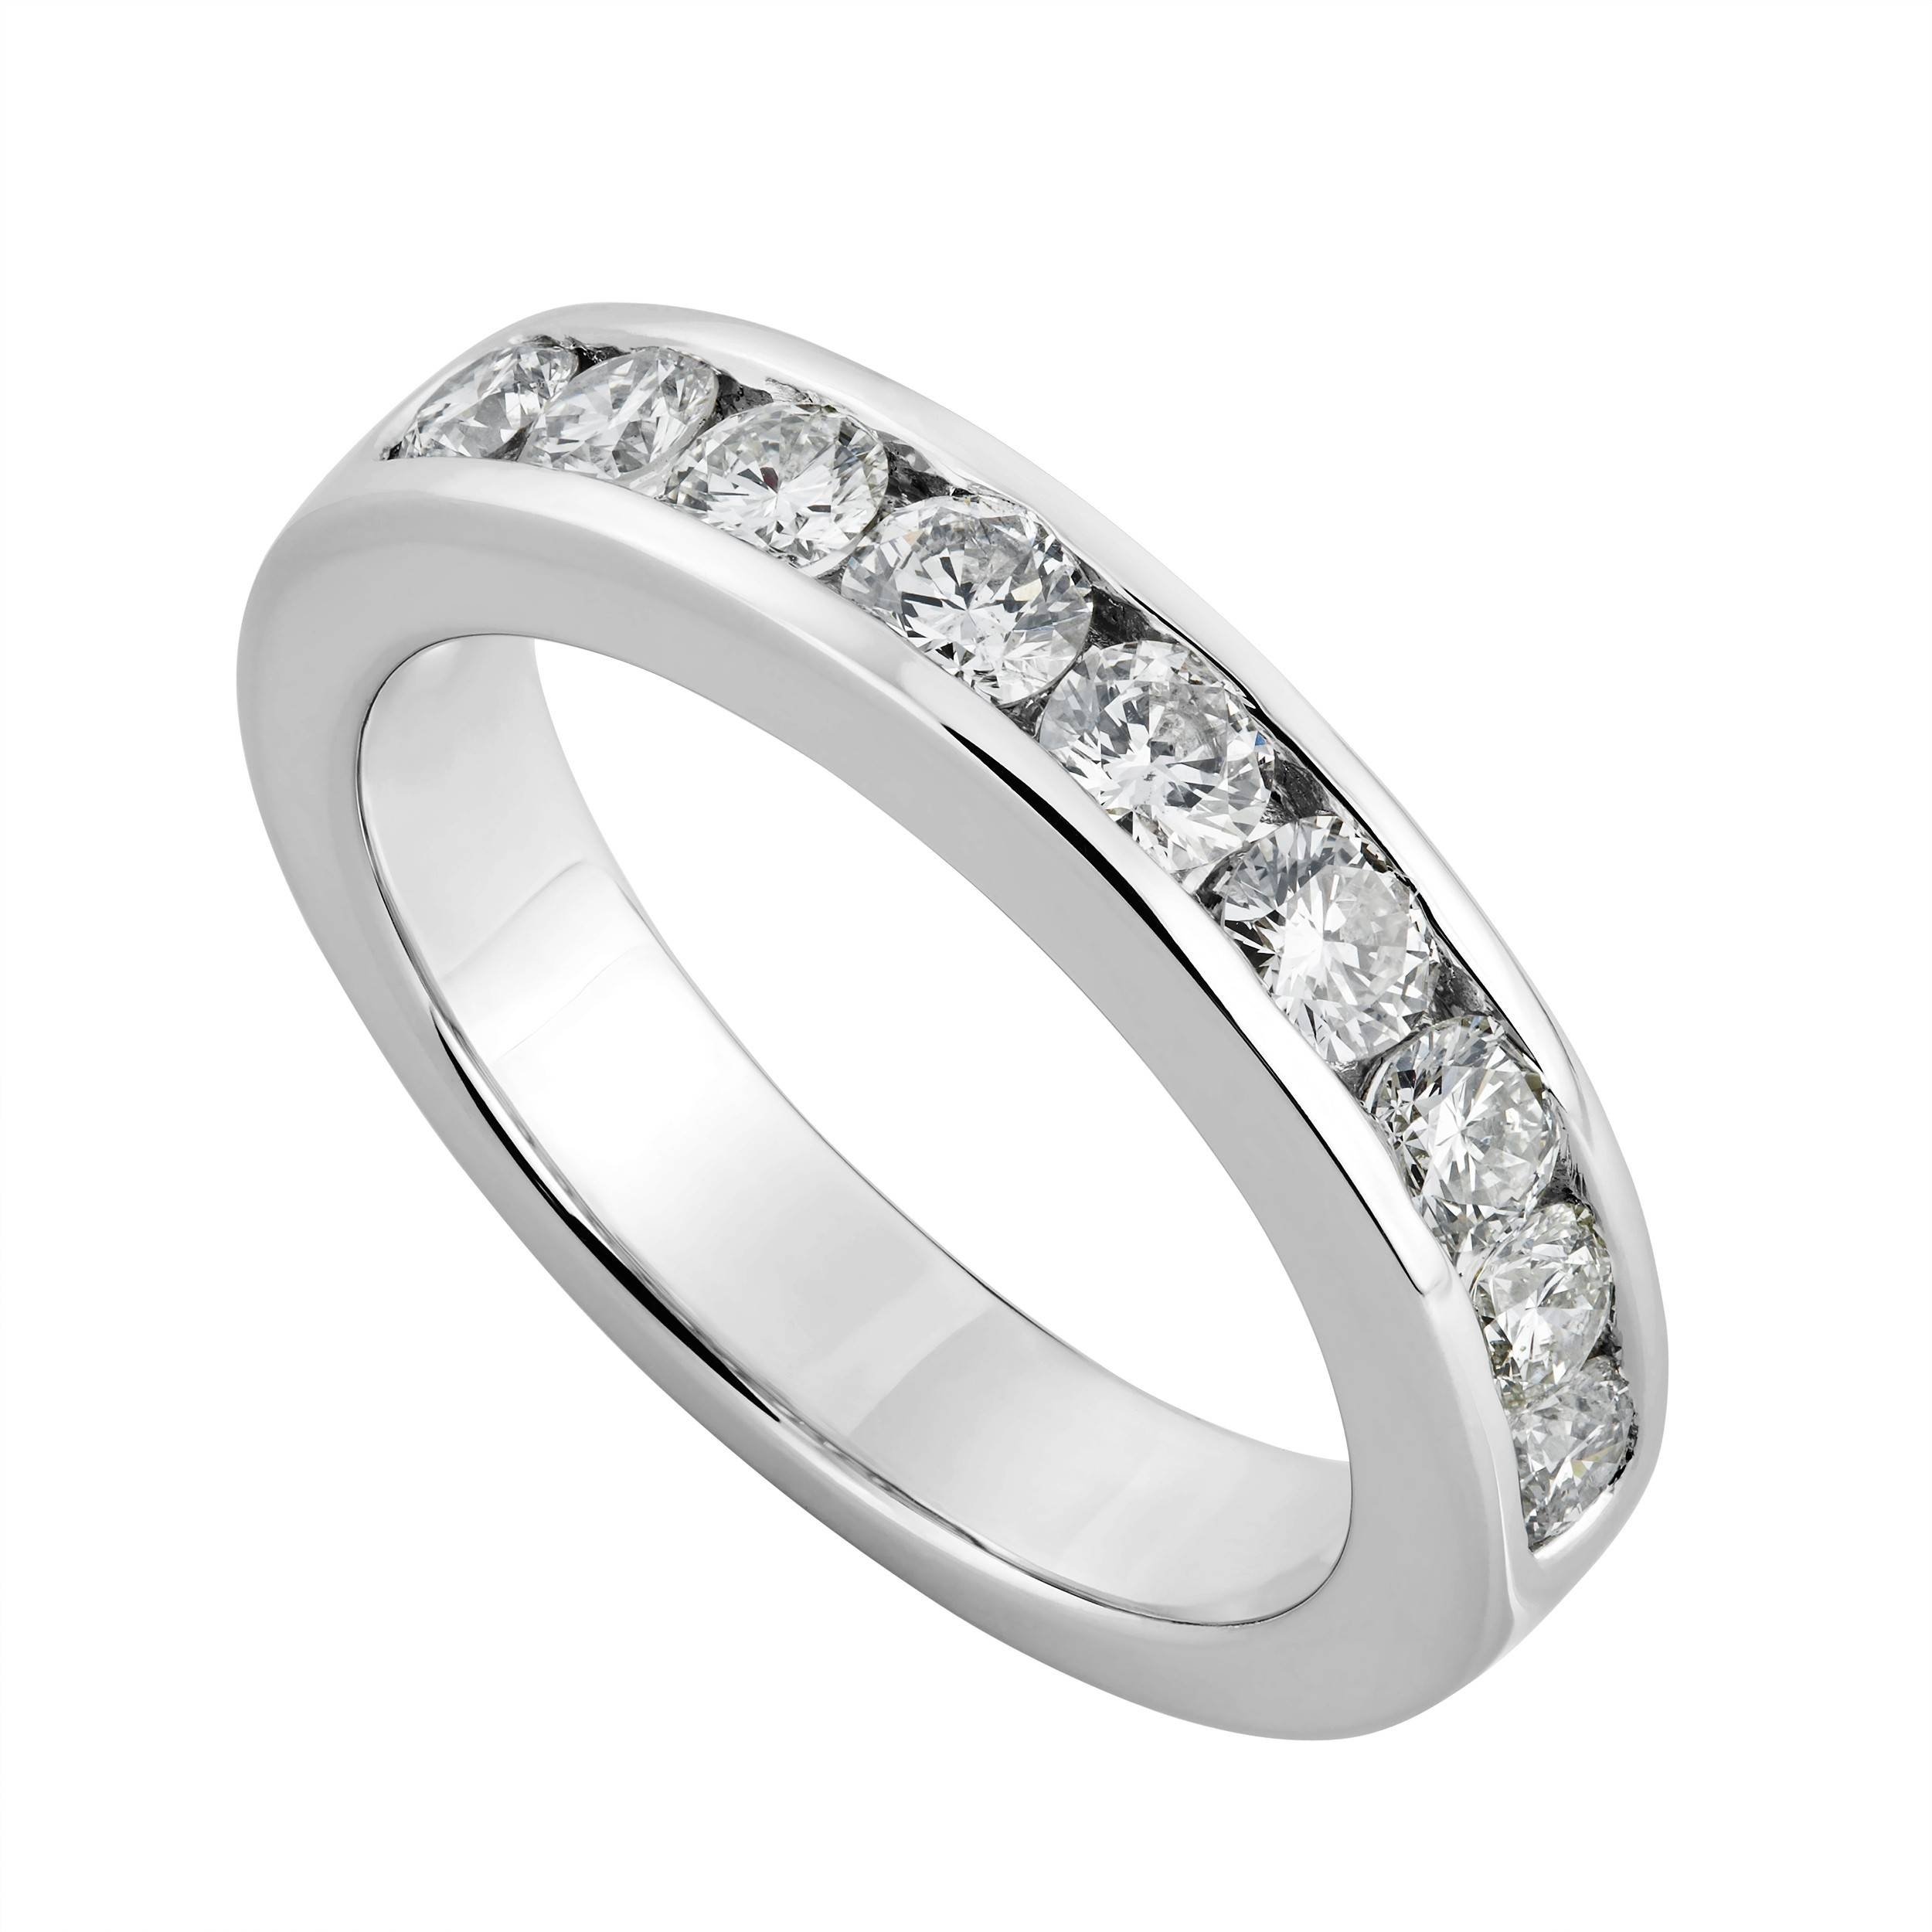 Wedding Rings : Unique Matching Wedding Bands Eternity Band For Most Recent Platinum Eternity Wedding Bands (View 2 of 15)